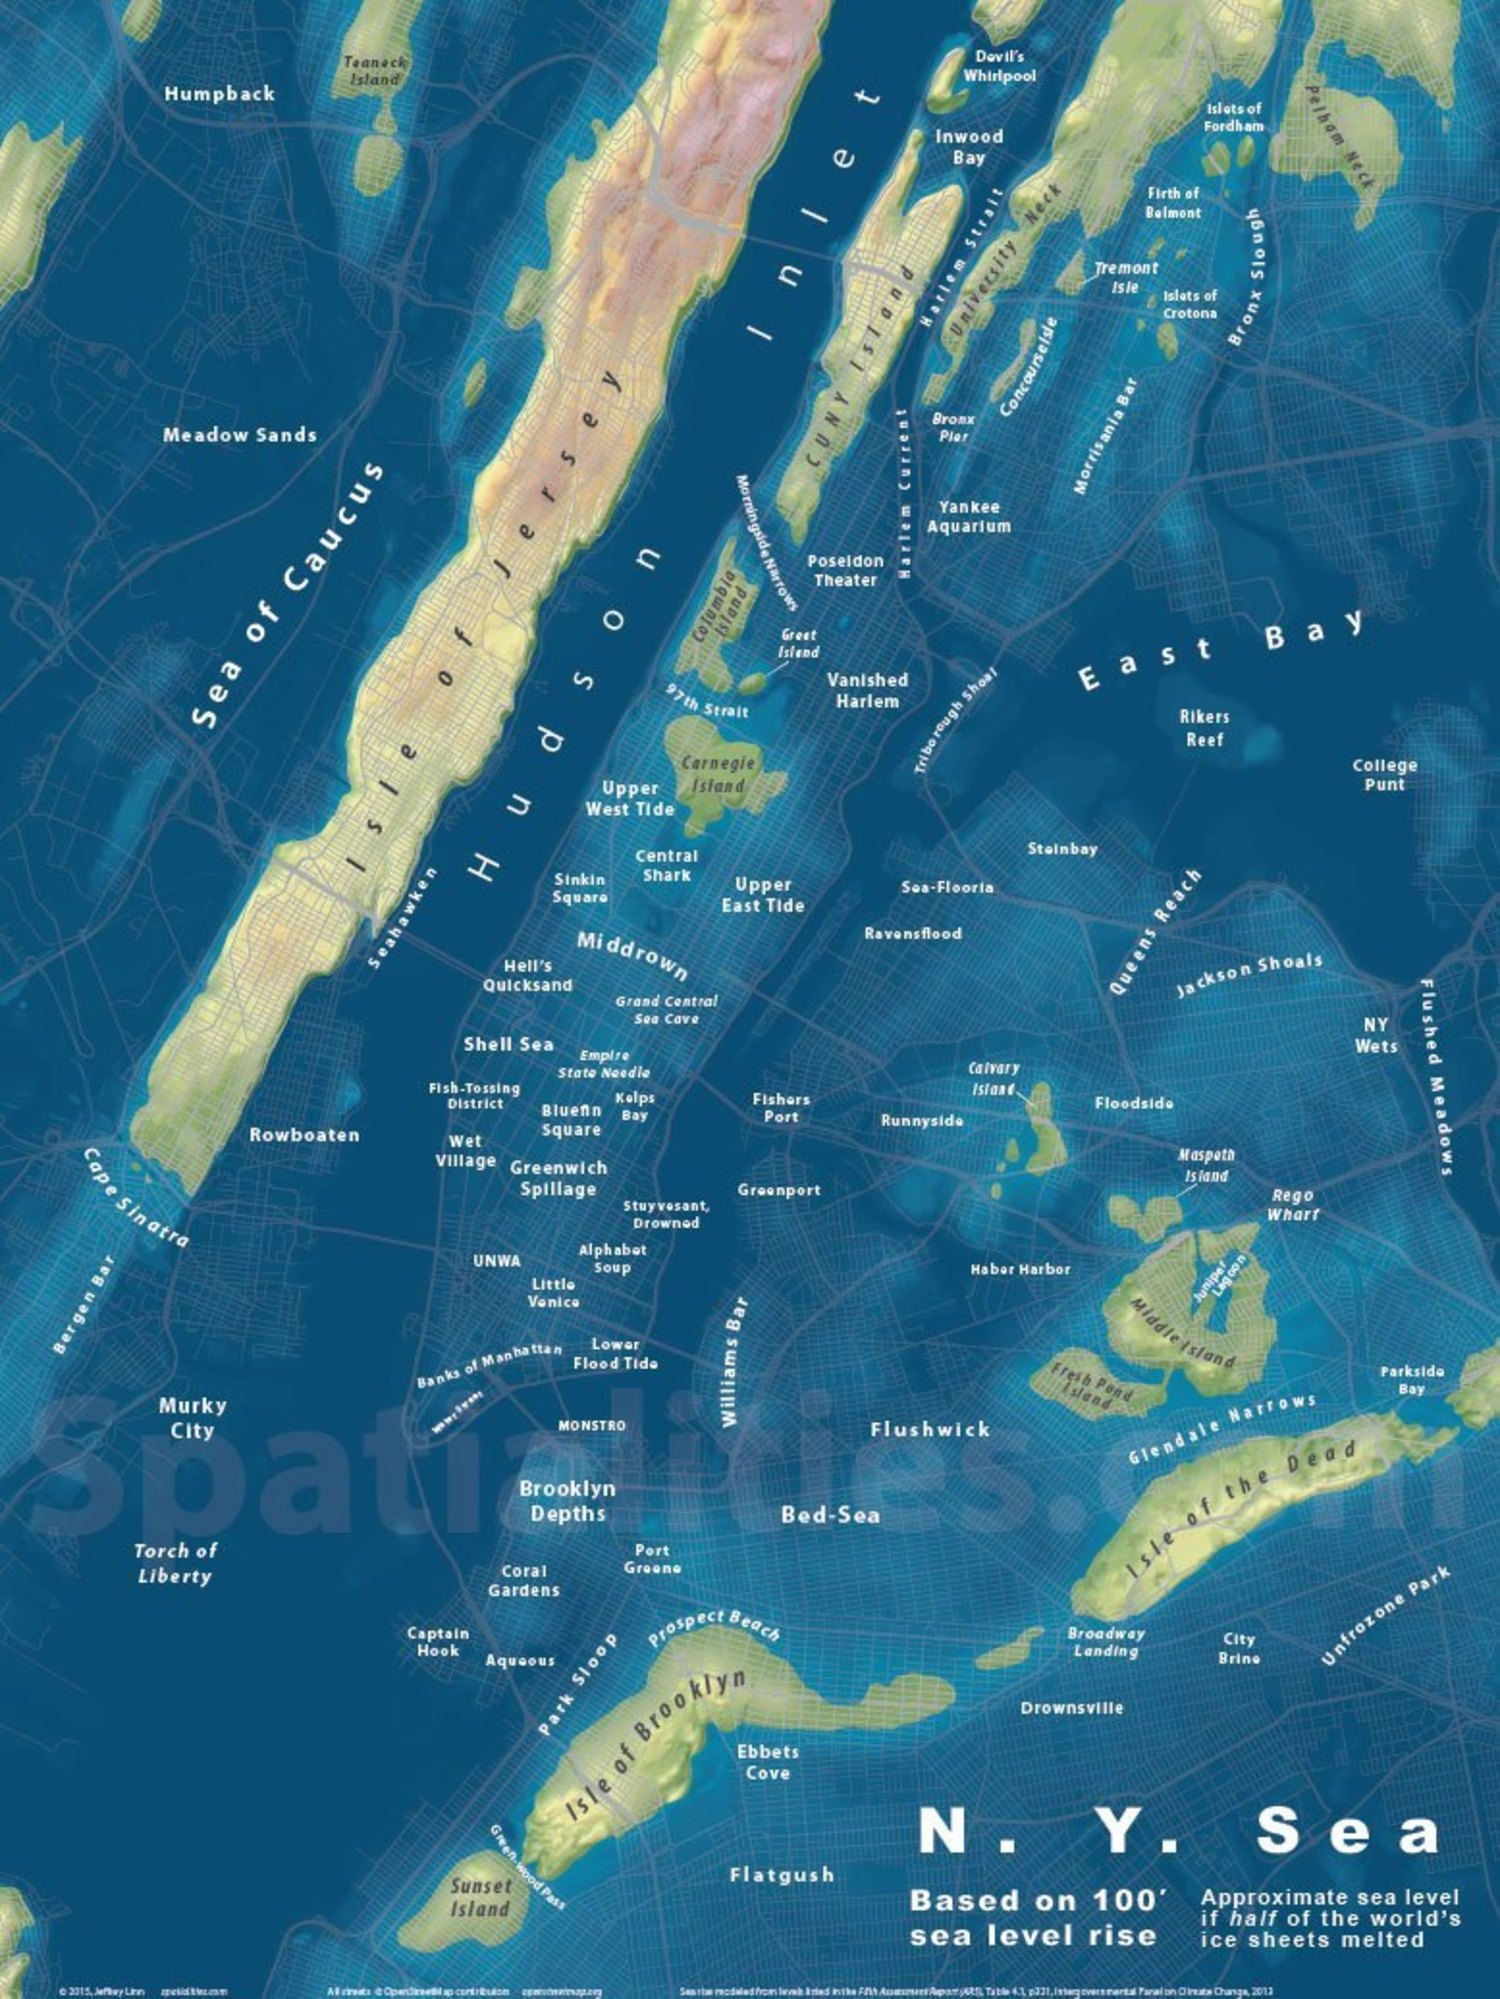 New York City Based on a 100' Sea Water Rise